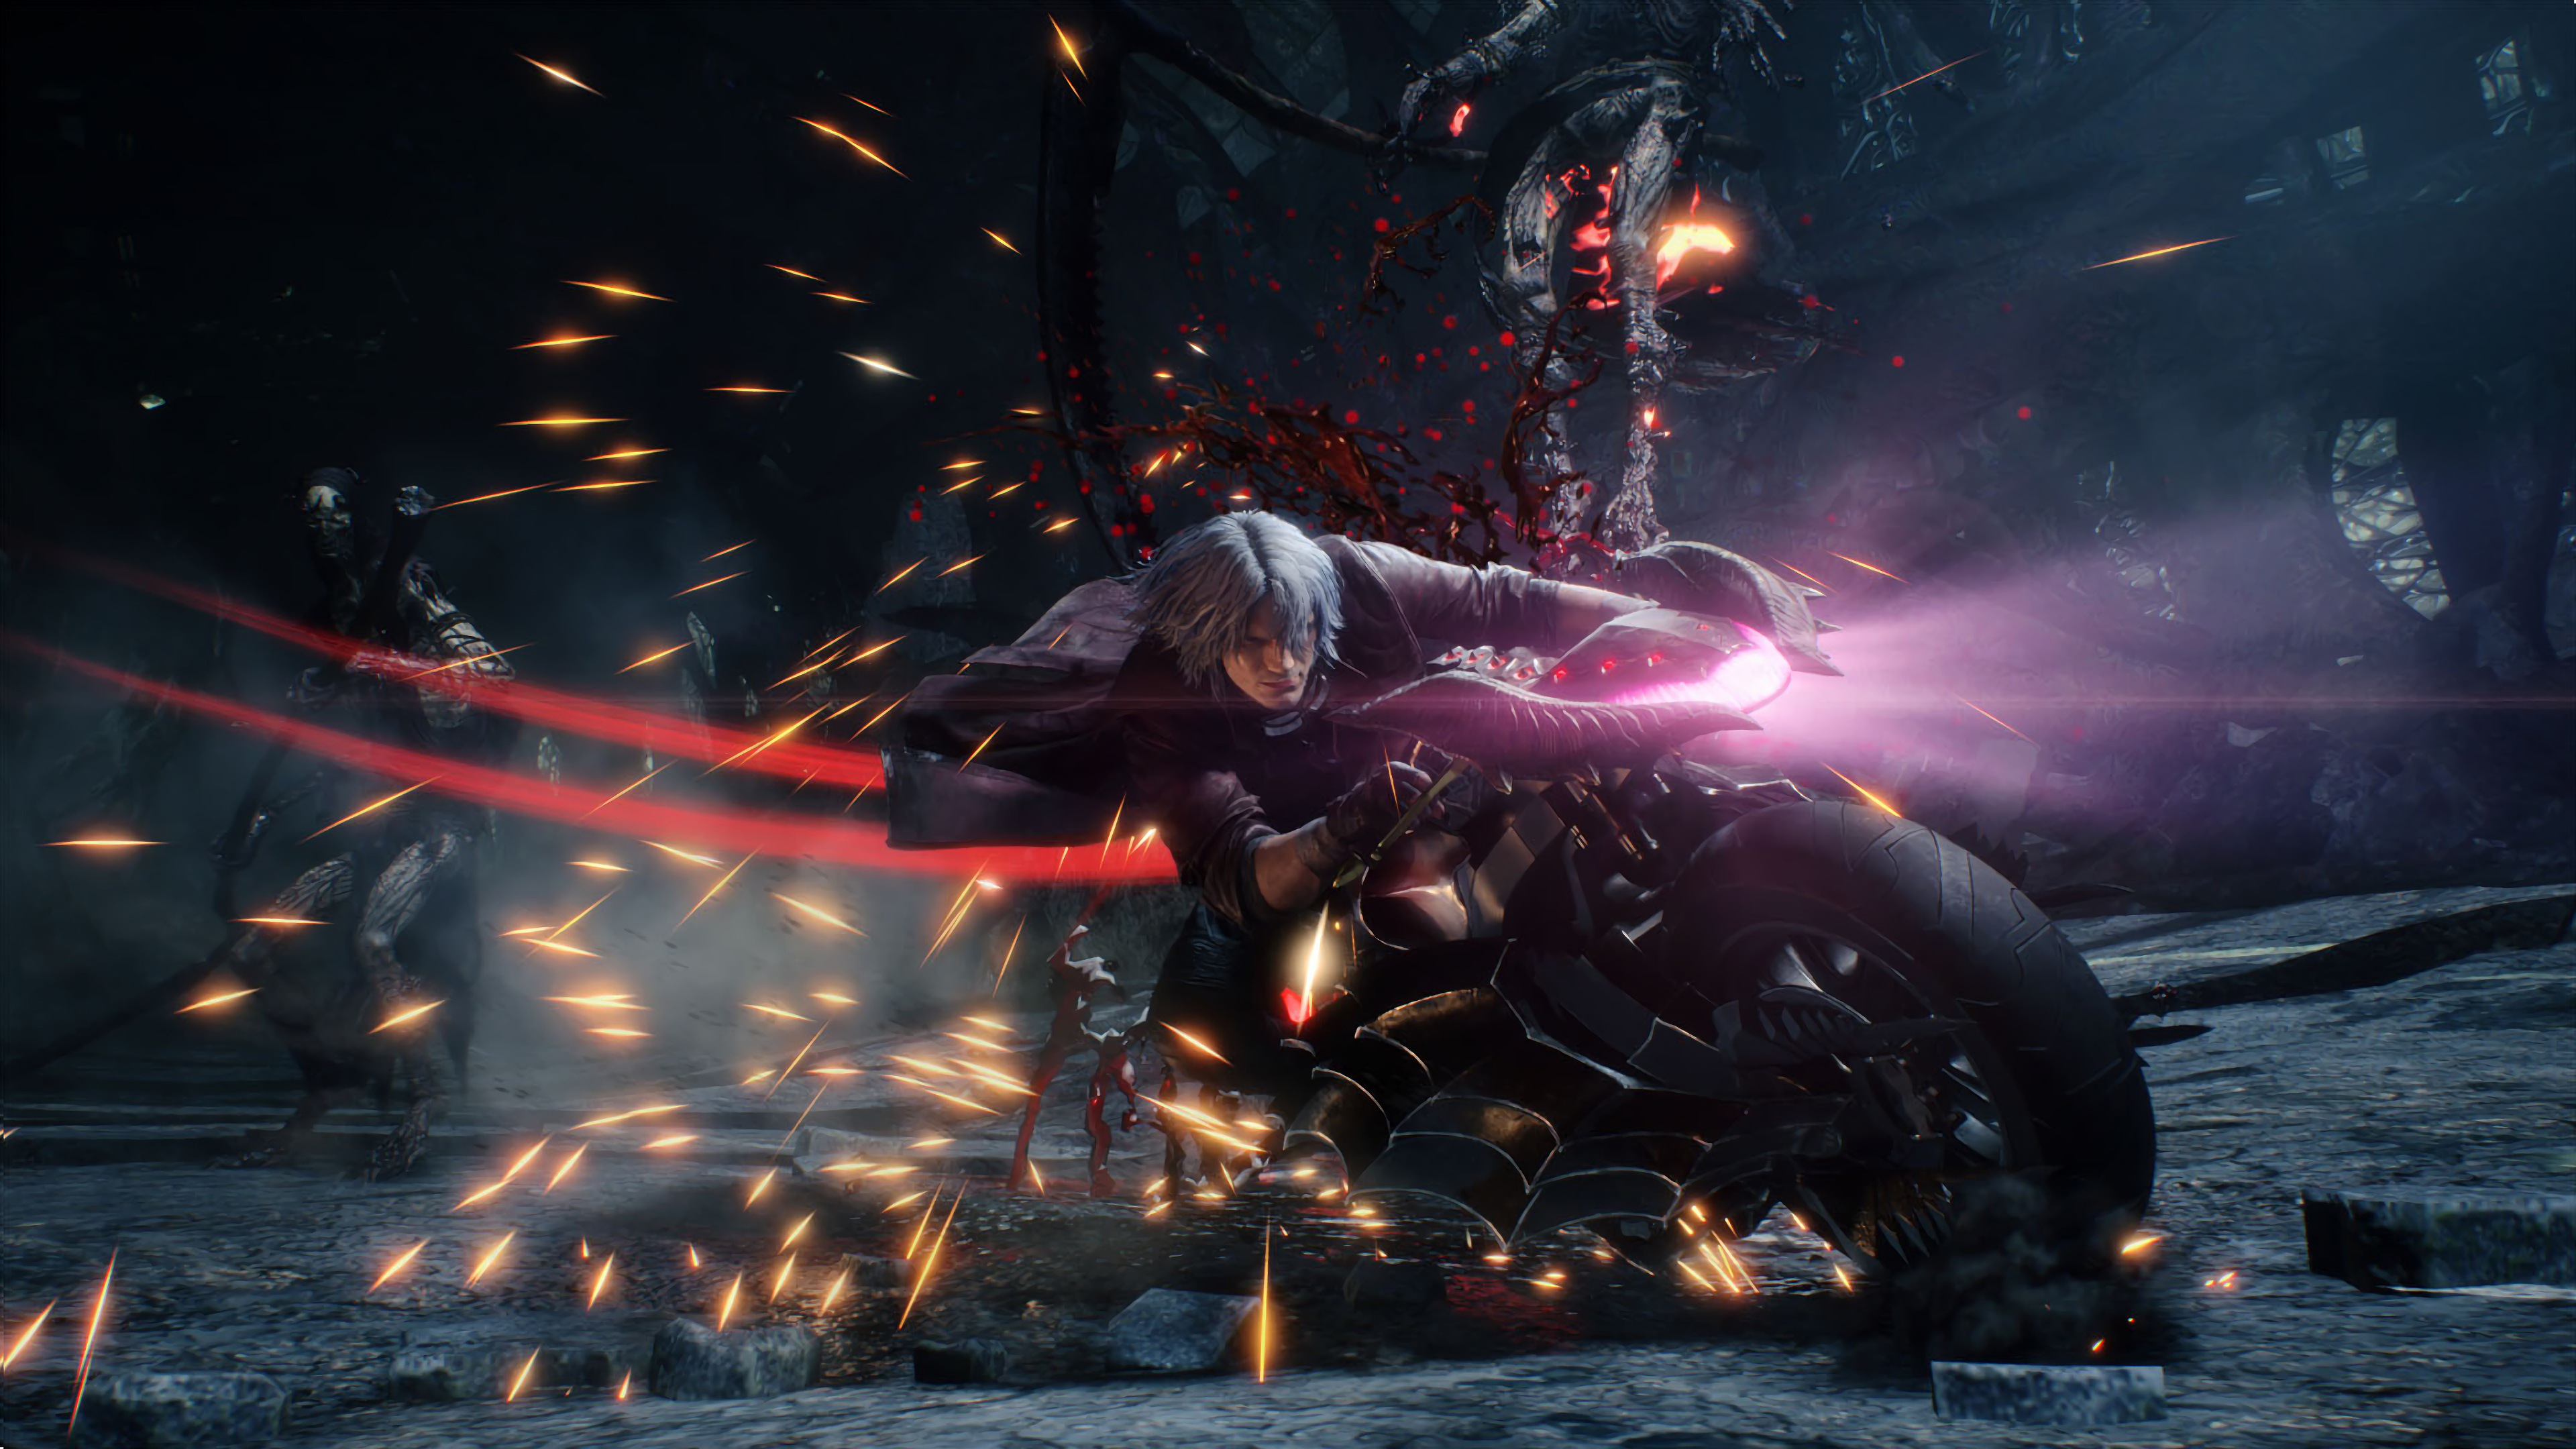 Dante Motorcycle Devil May Cry 5 Wallpaper 4k Ultra Hd Id 4324